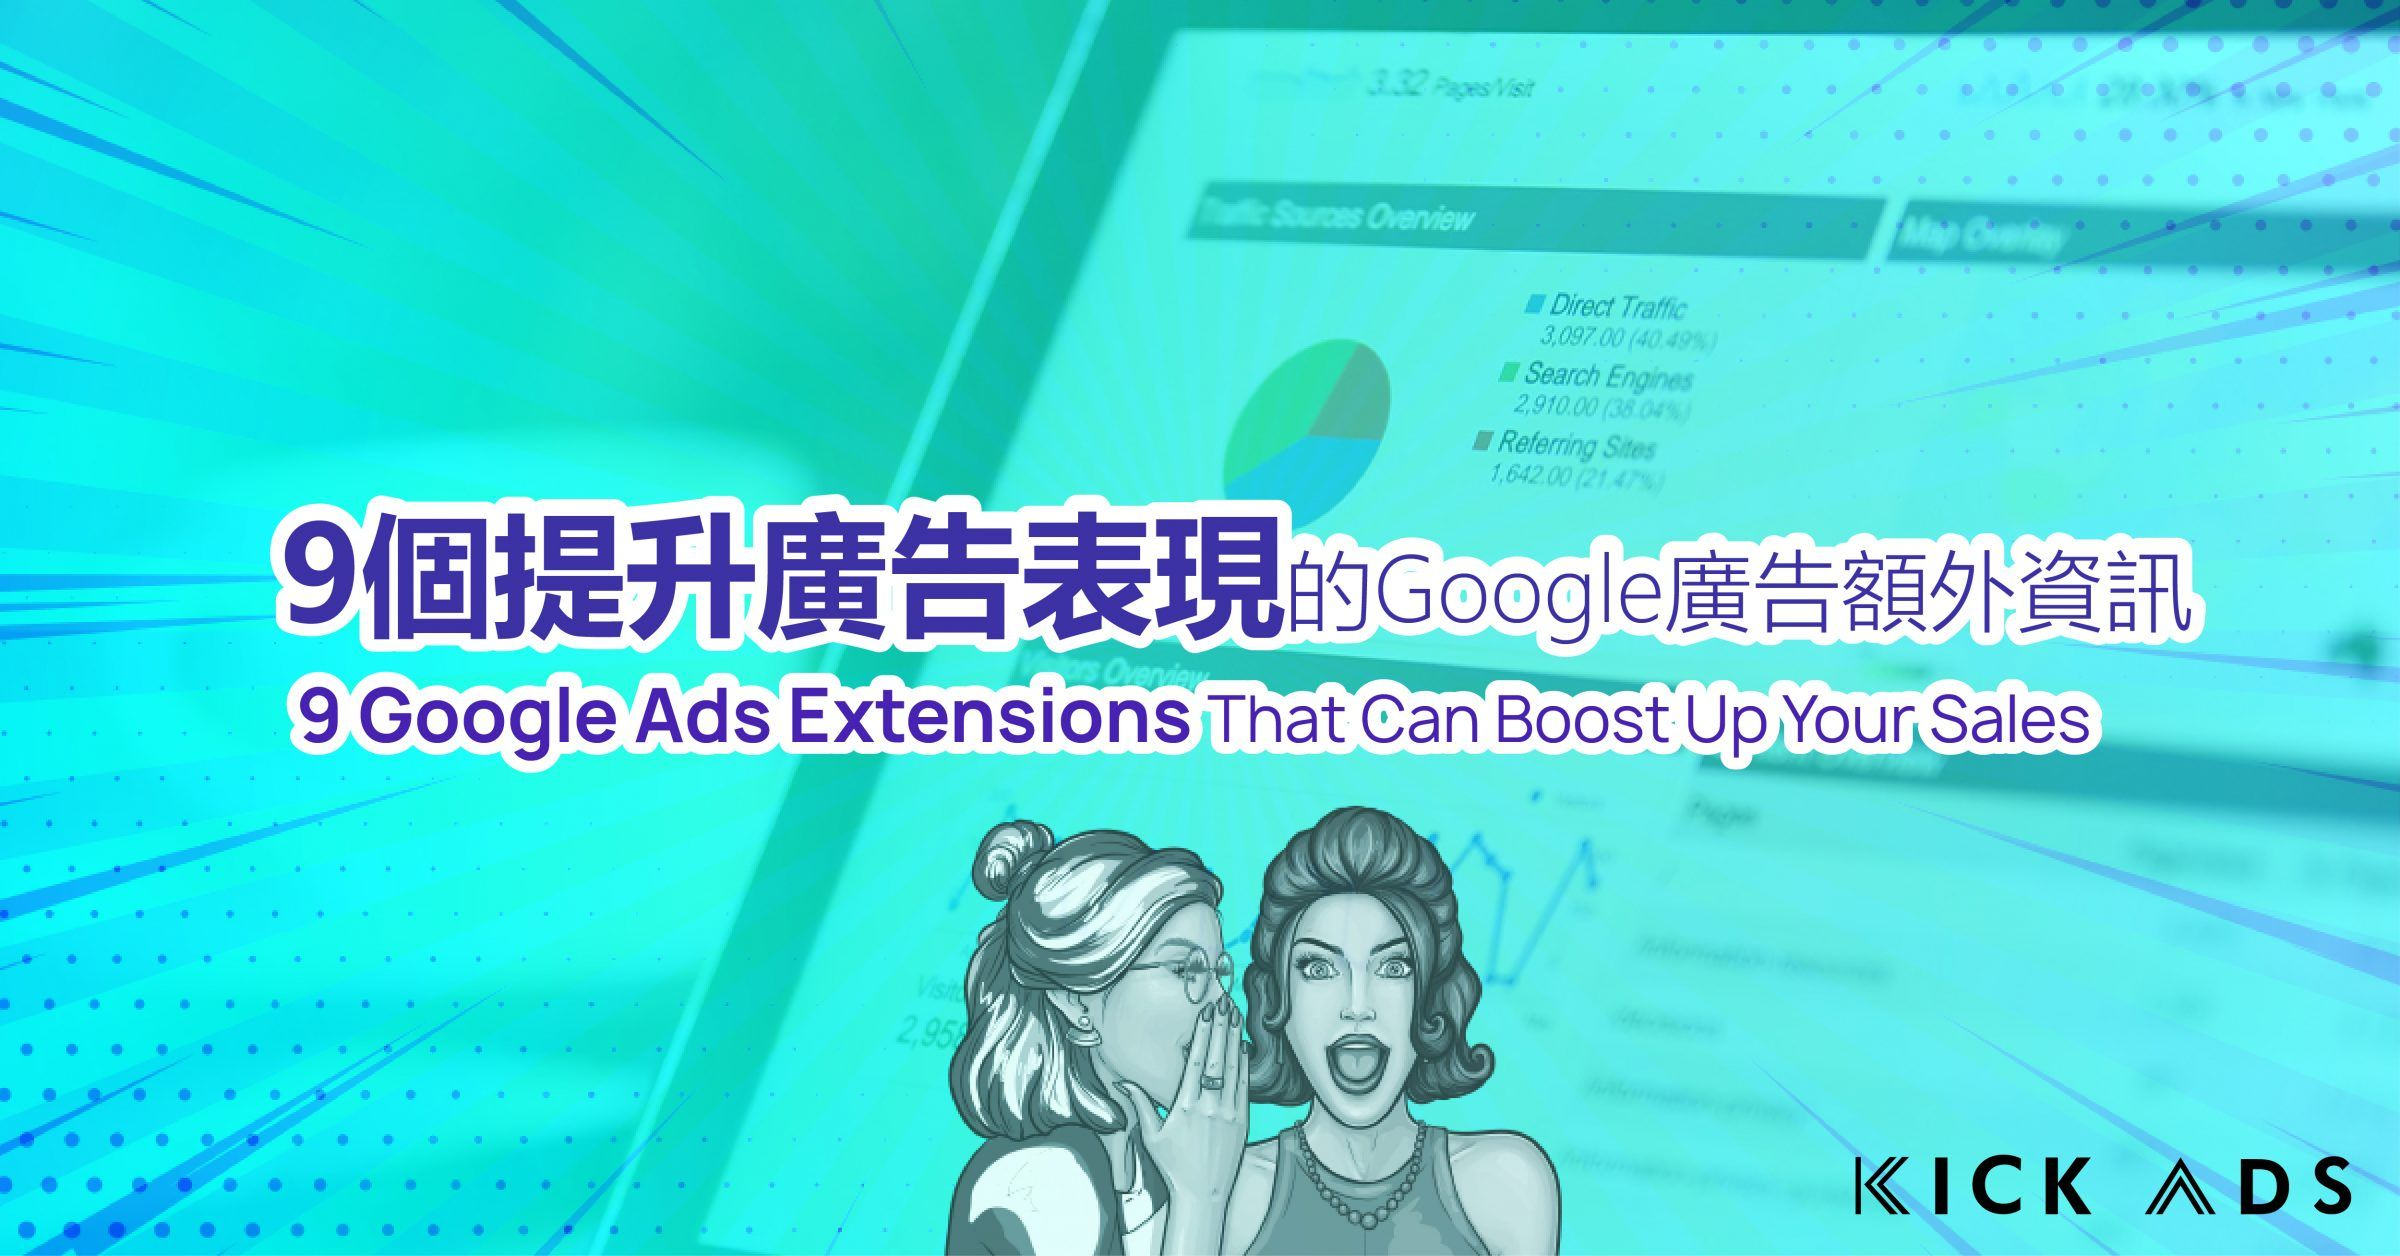 9 GOOGLE ADS EXTENSIONS THAT CAN BOOST UP YOUR SALES